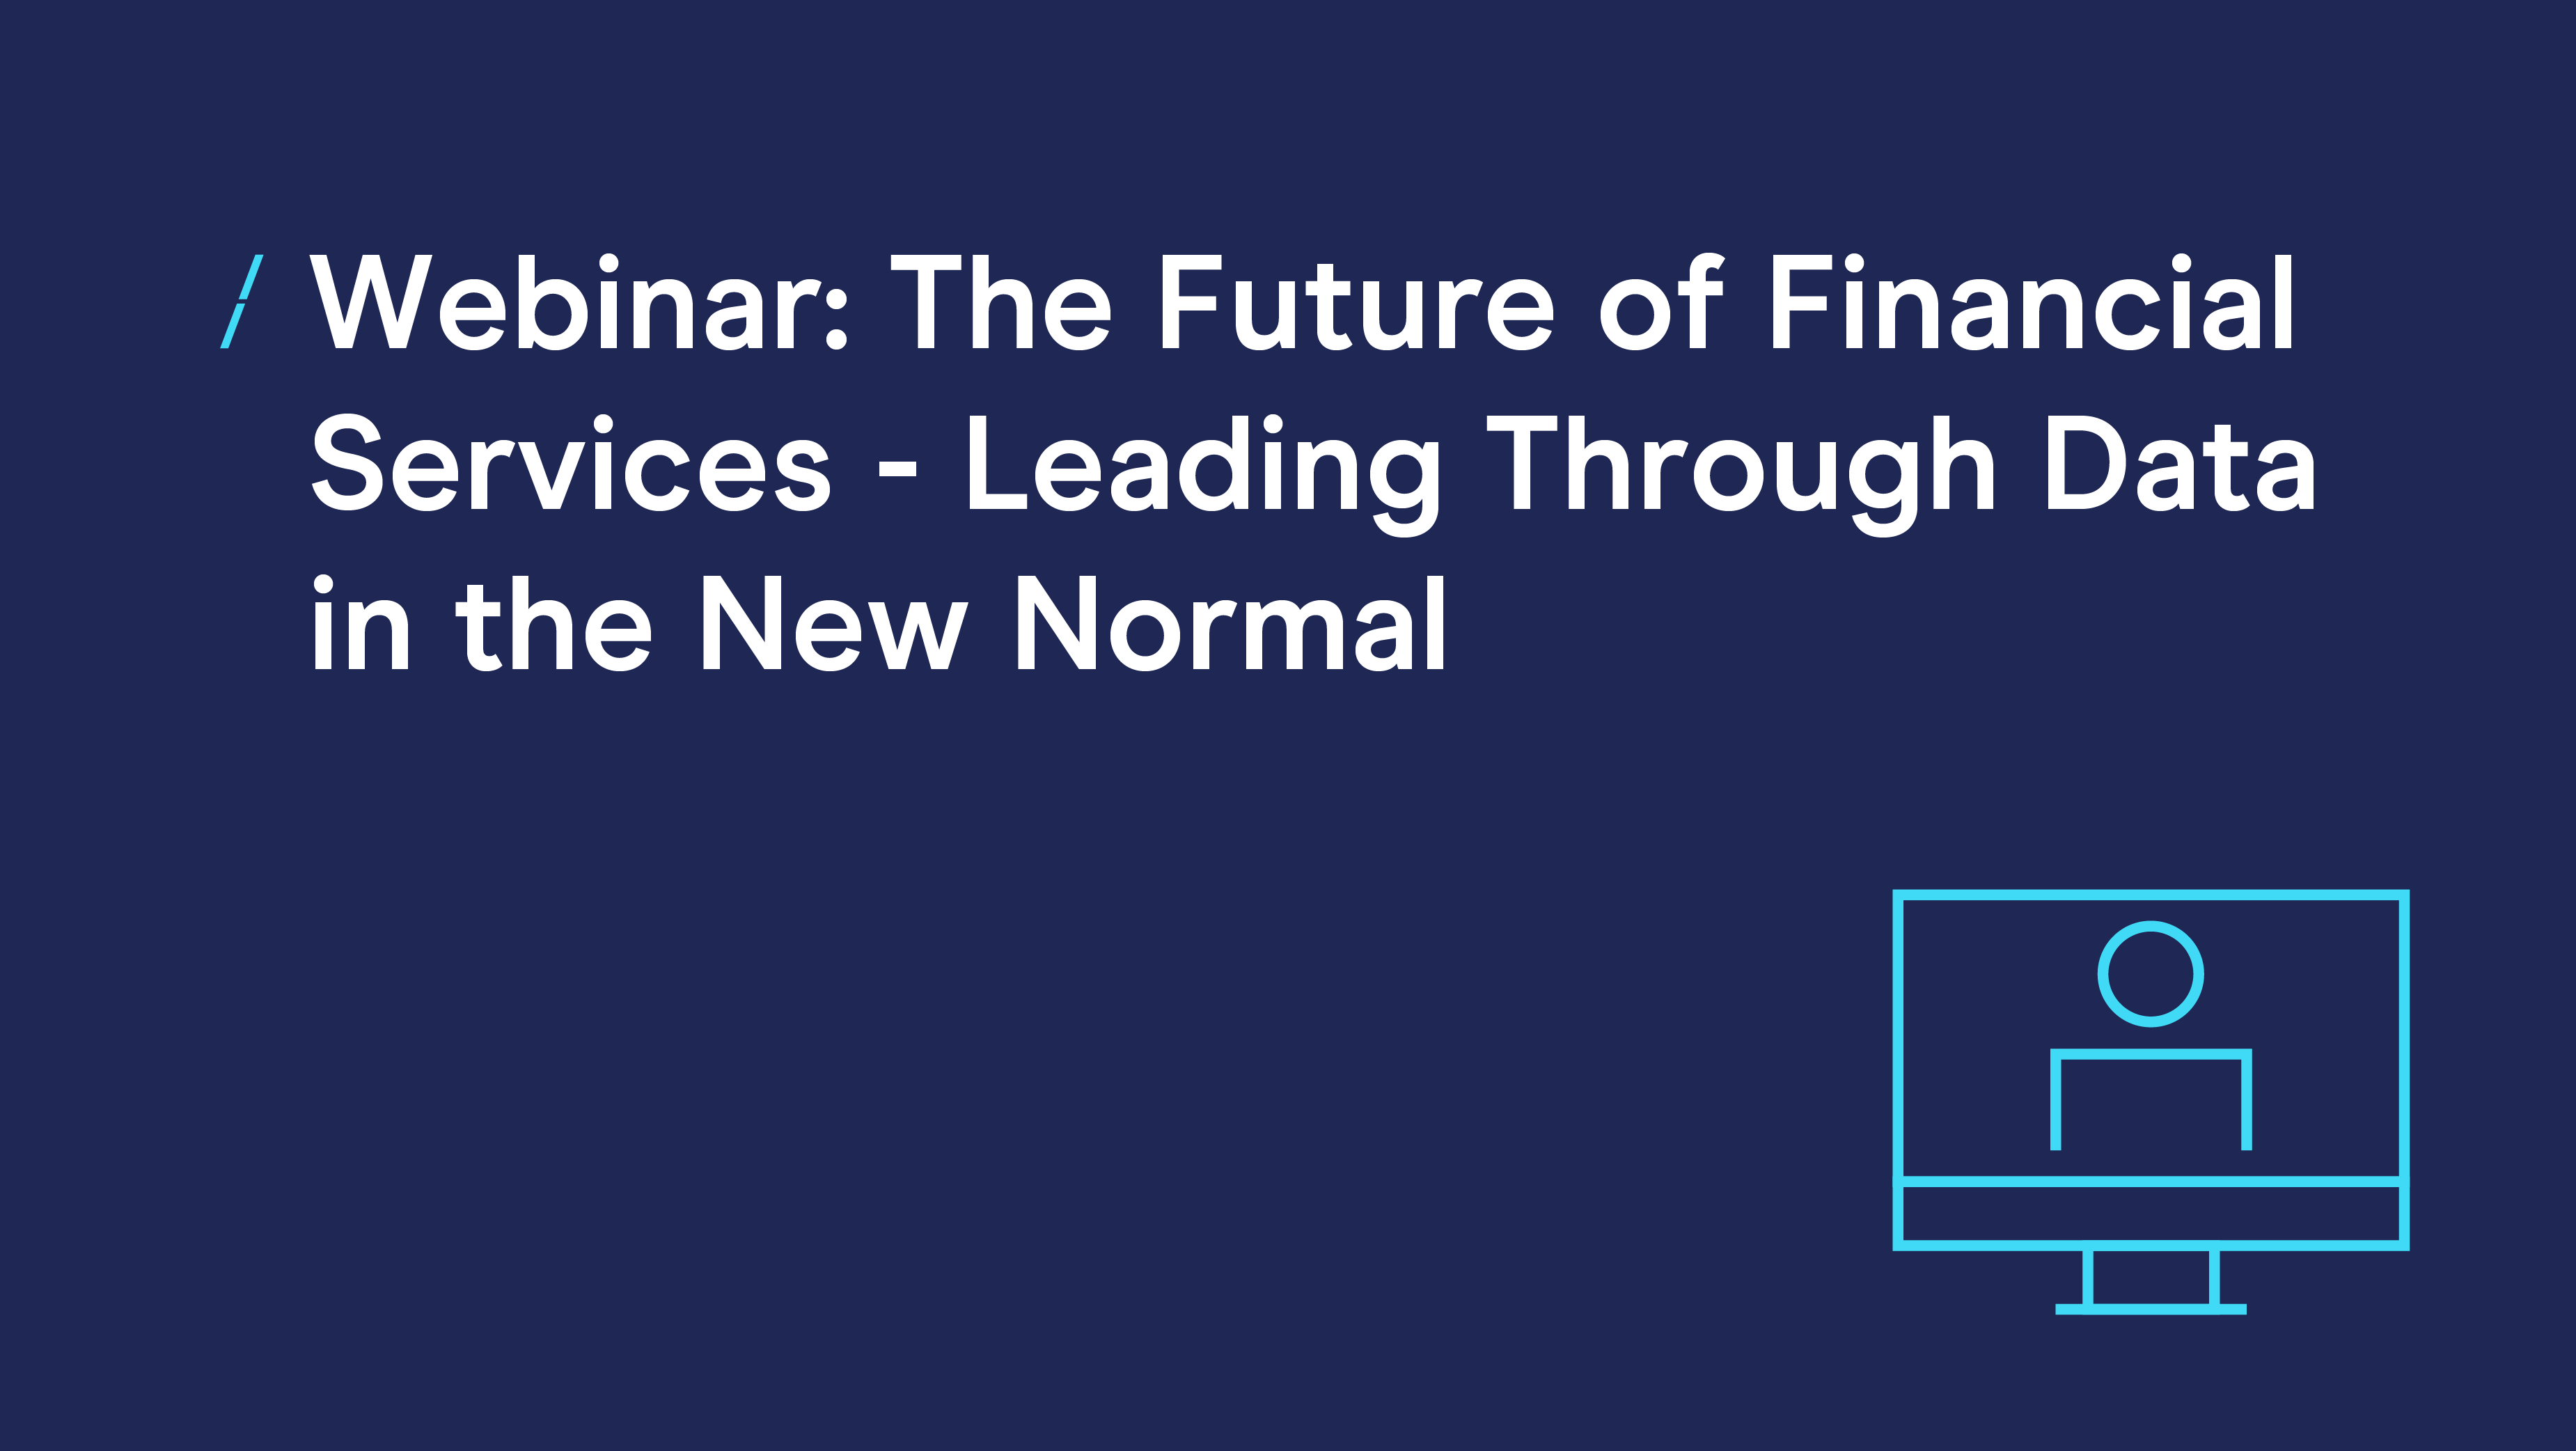 Brand level_Webinar- The Future of Financial Services - Leading Through Data in the New Normal_Webinars.png